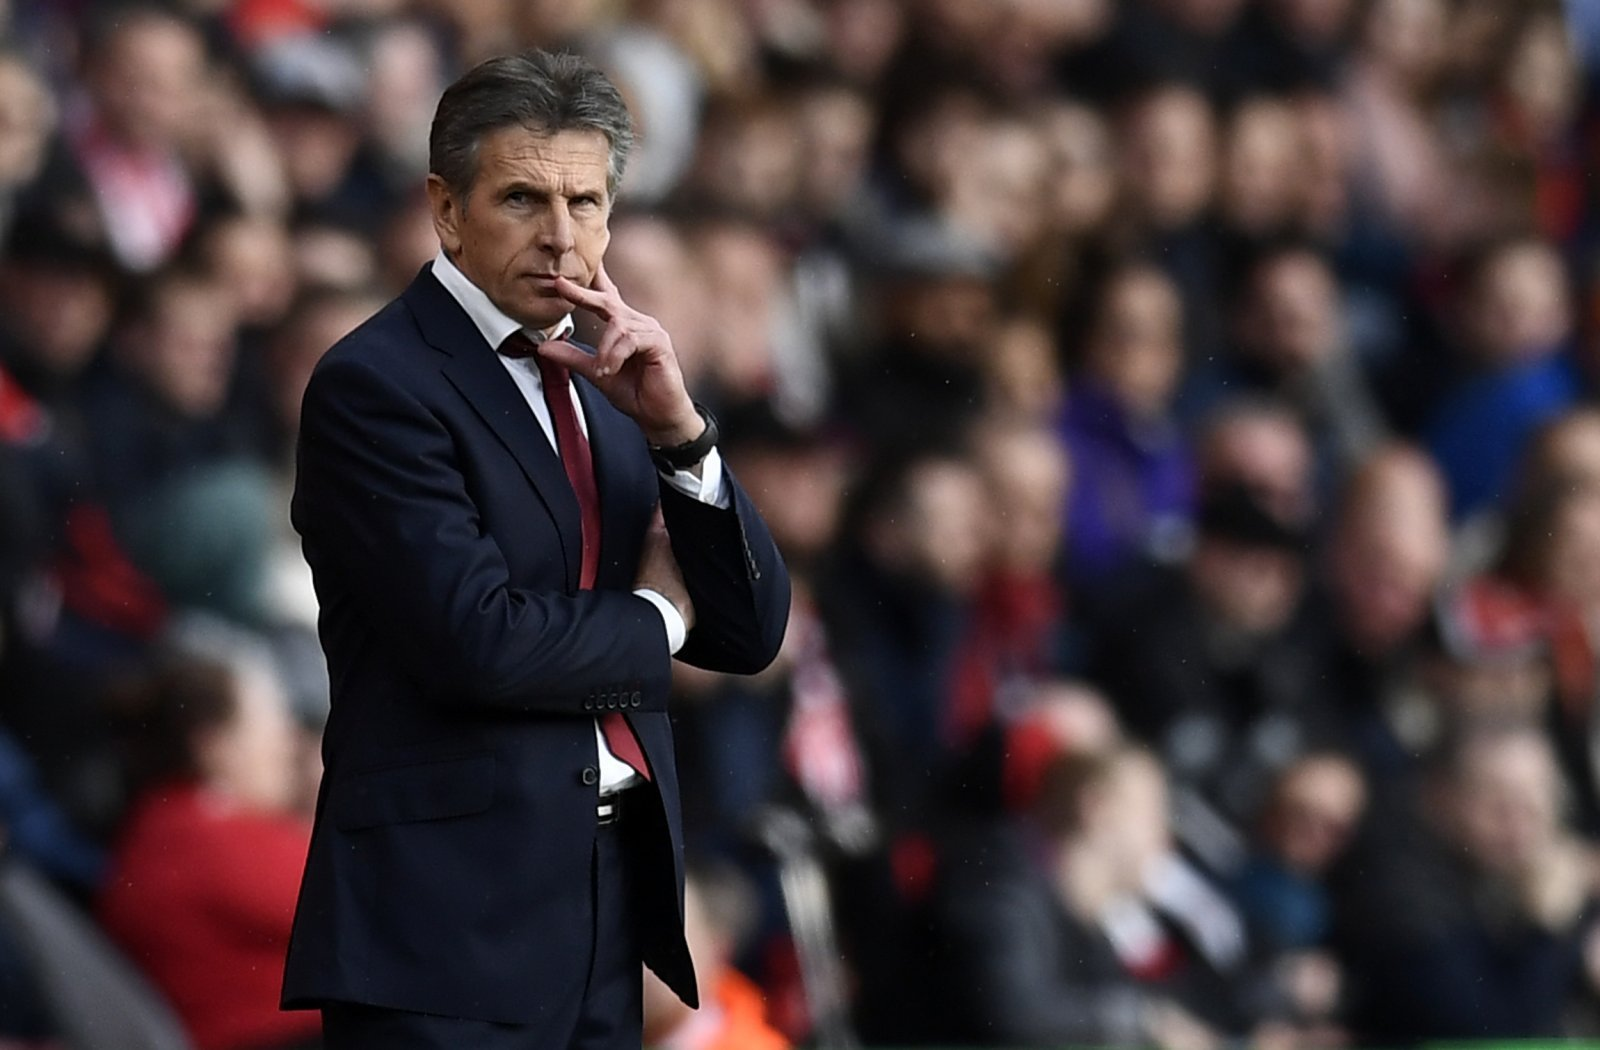 Puel expects Liverpool target Van Dijk to stay at Southampton